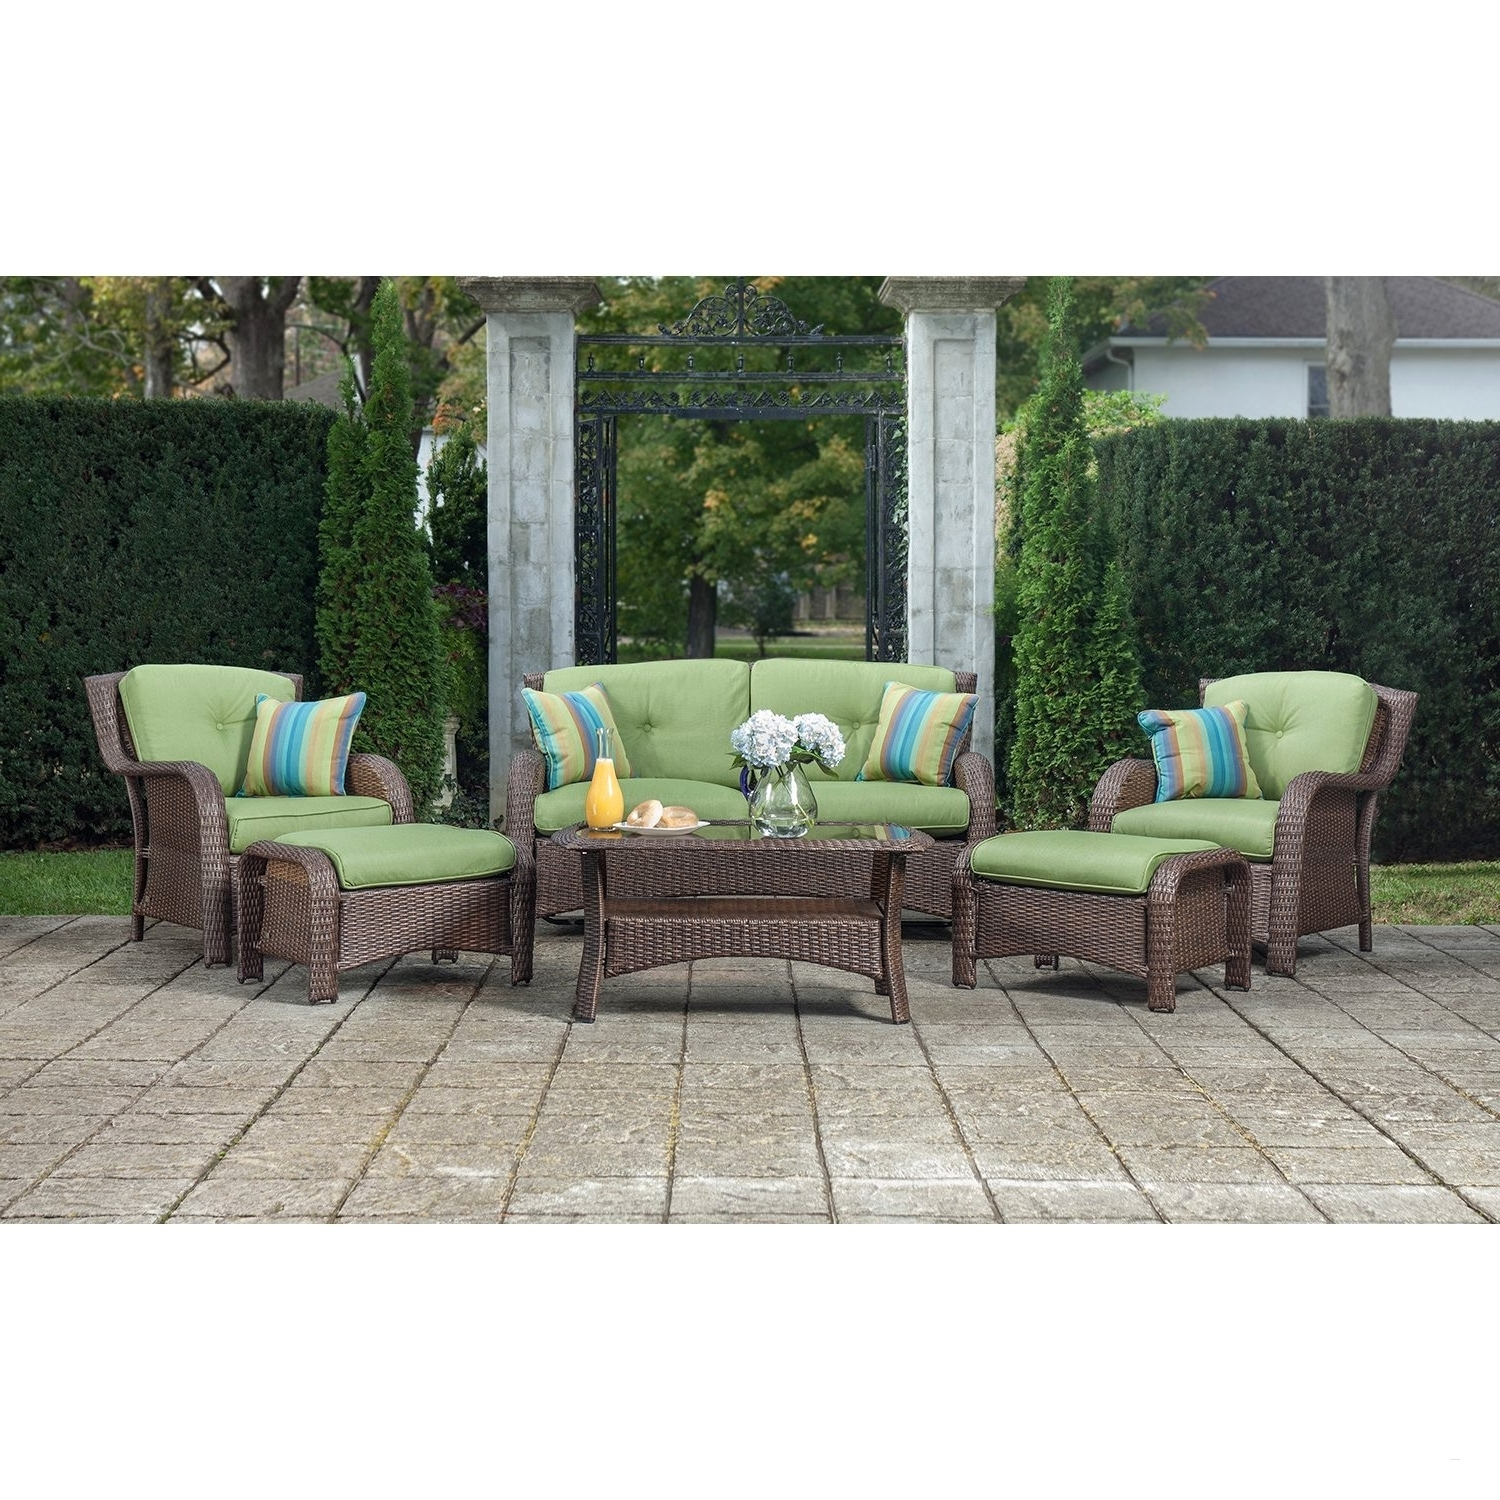 Most Recently Released Lazy Boy Outdoor Furniture Unique 72 Unique Inexpensive Wicker Throughout Lazy Boy Patio Conversation Sets (View 11 of 15)